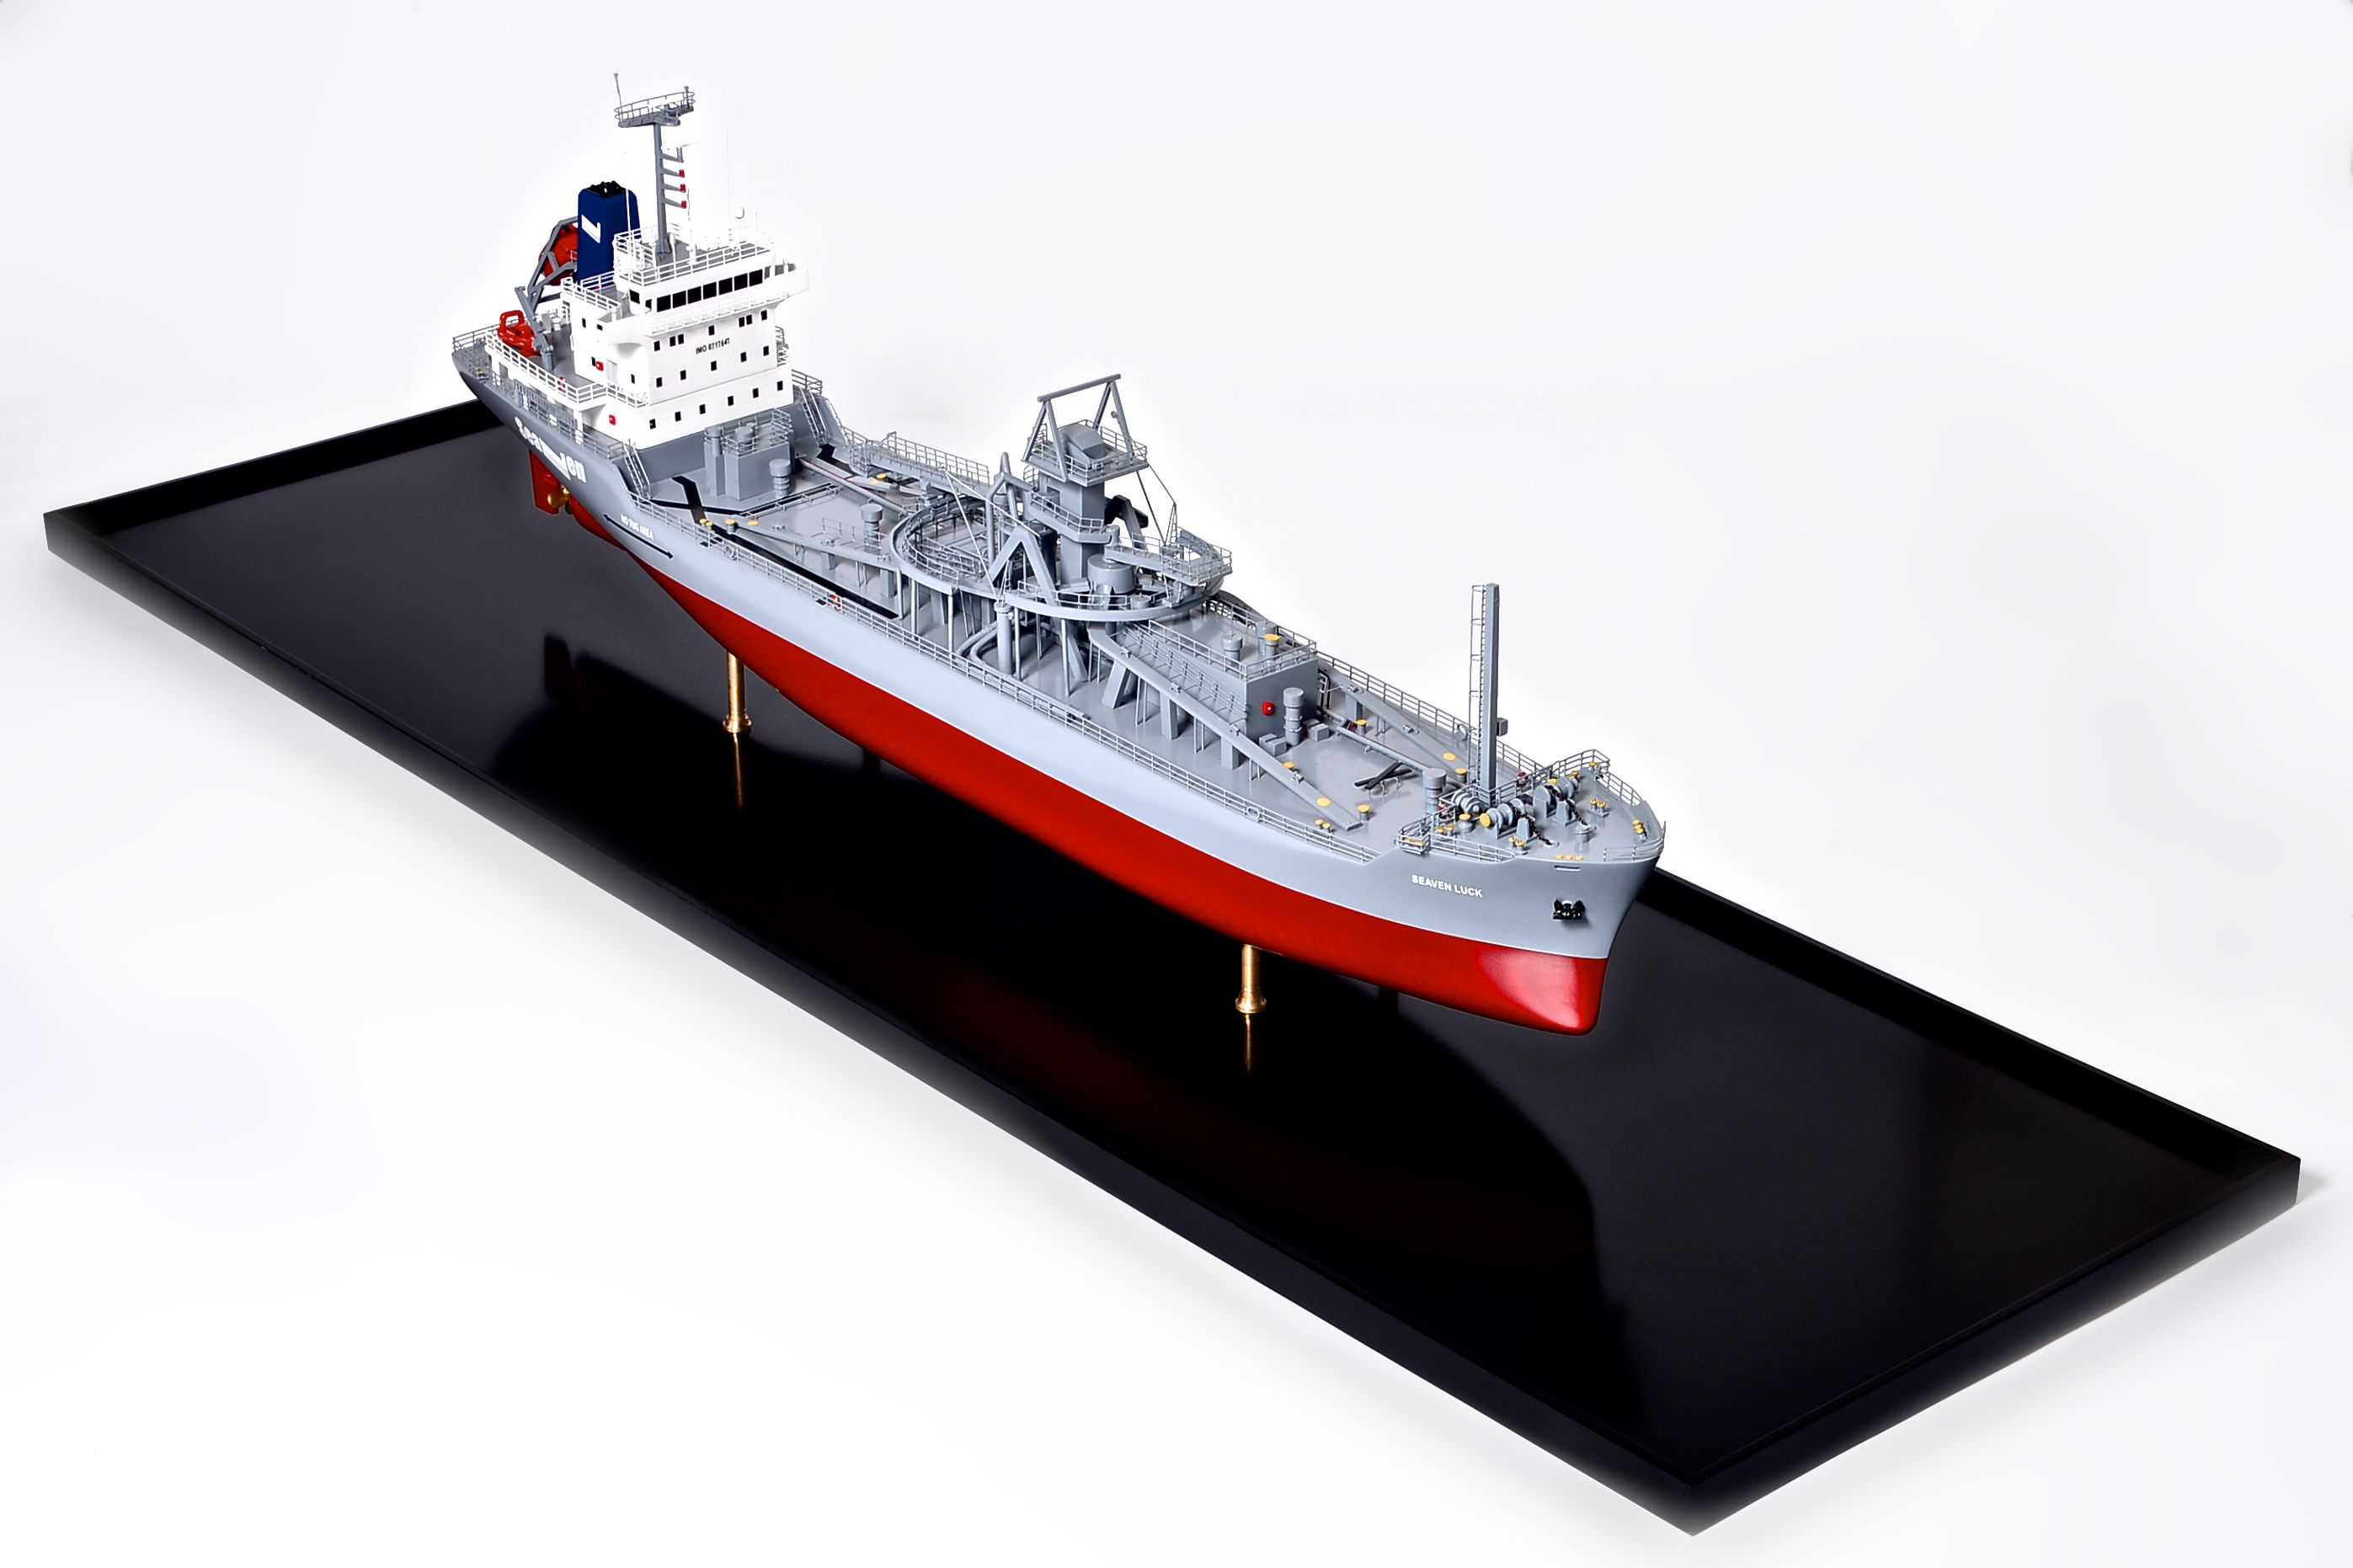 2474-14112-Seaven-Luck-Model-Ship